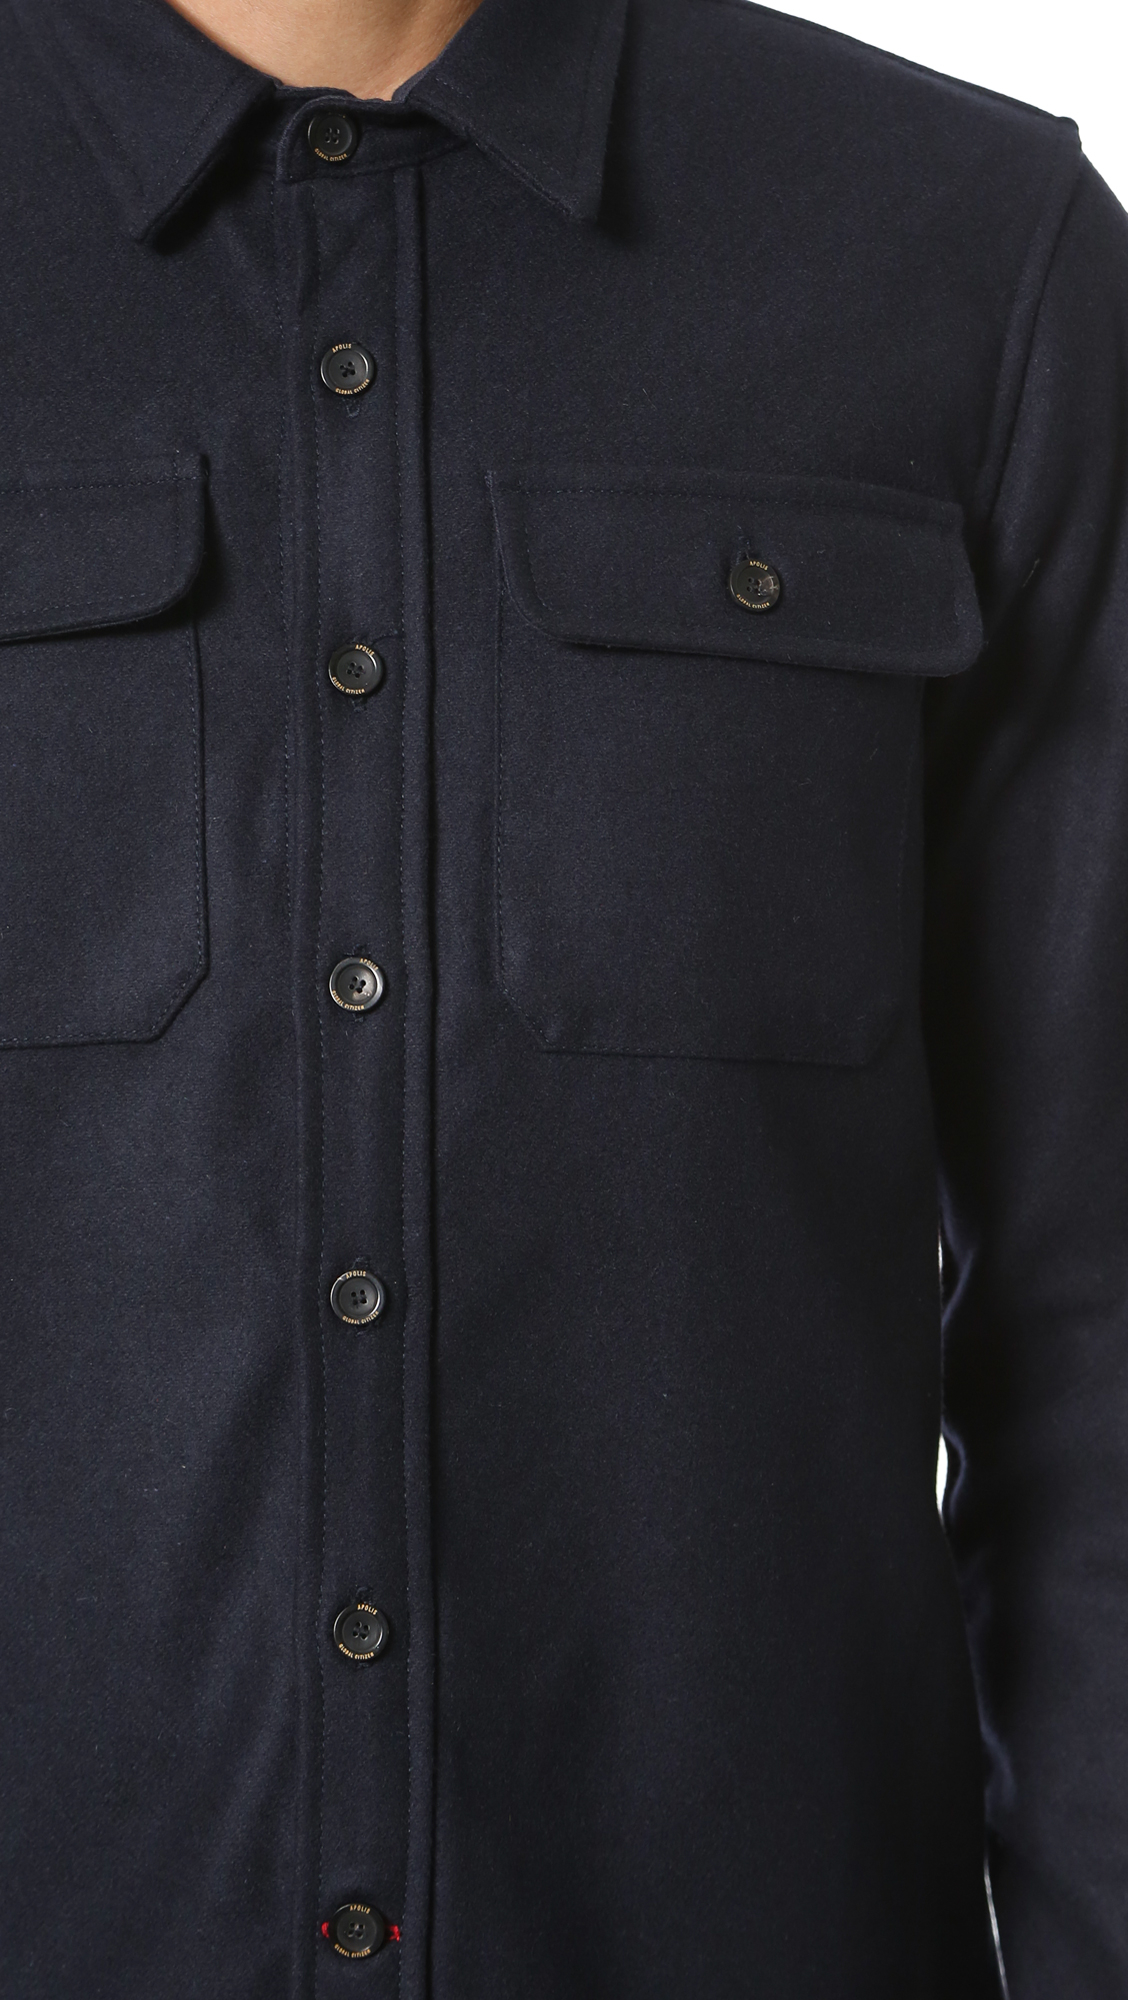 Apolis Wool Cpo Jacket In Navy Blue For Men Lyst